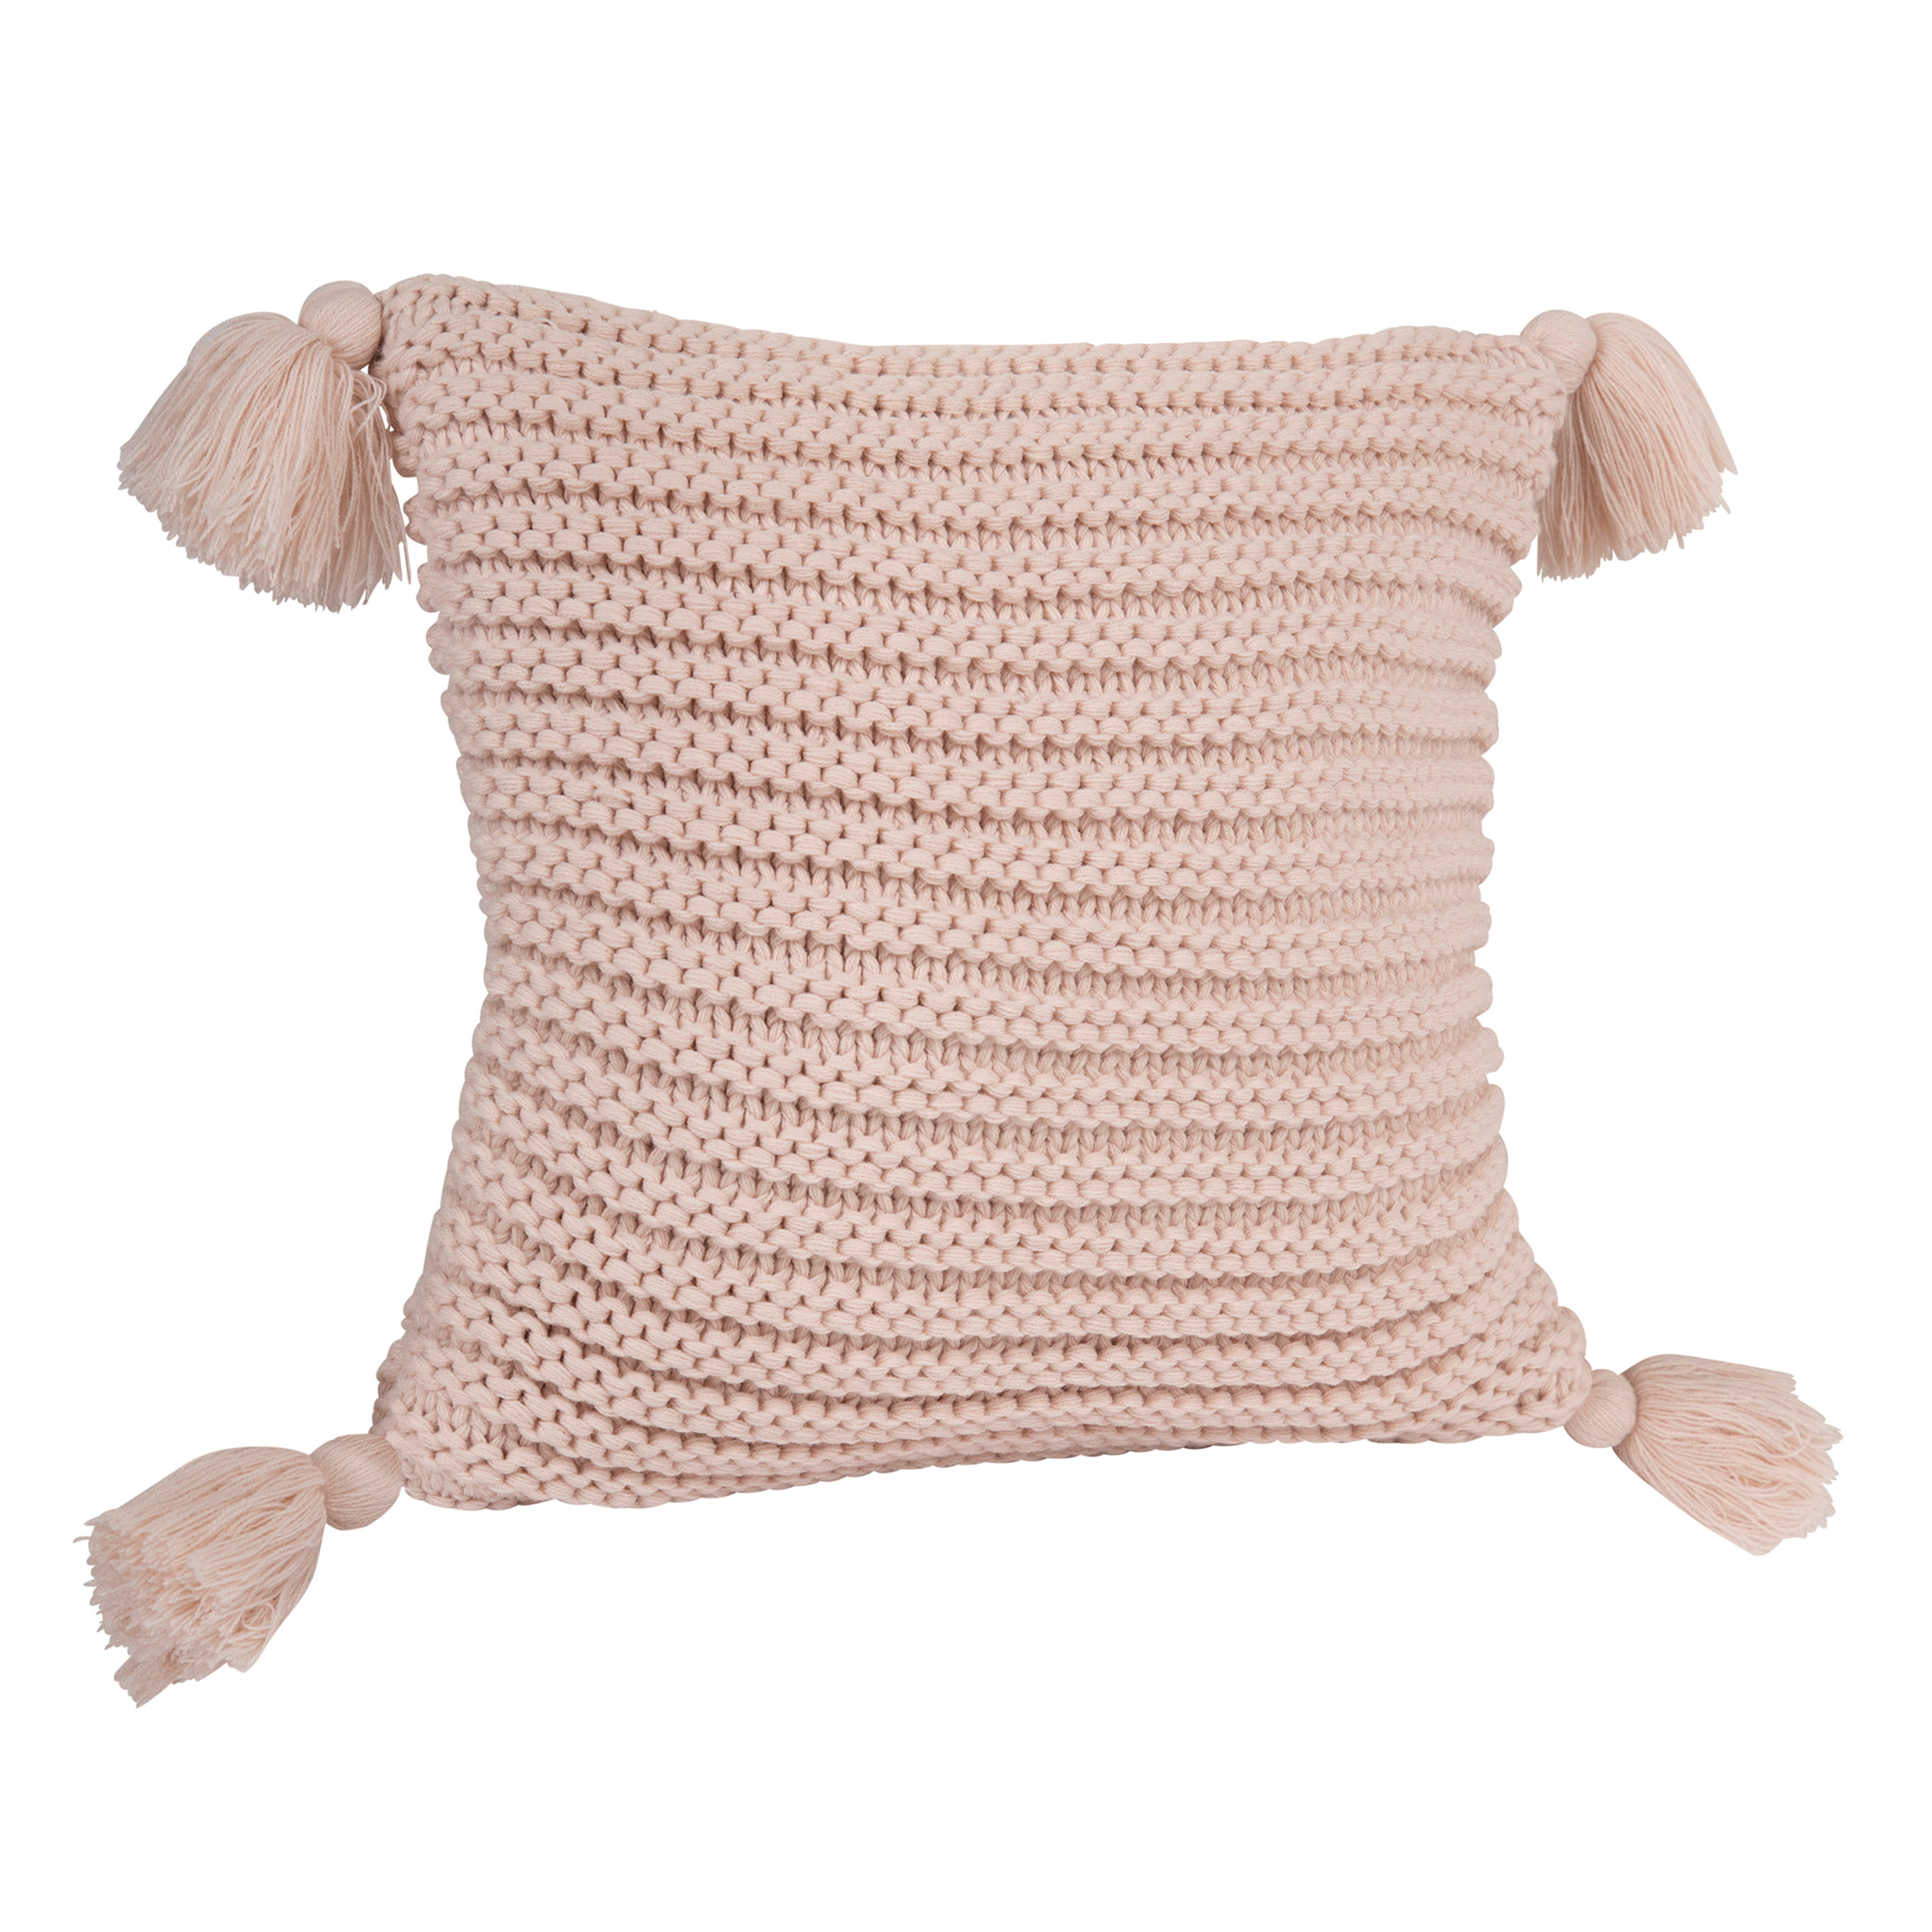 Kate And Laurel Tassey Large Ribbed Knit Throw Pillow Cover With Tassels 18 X 18 Dusty Pink Walmart Com Walmart Com